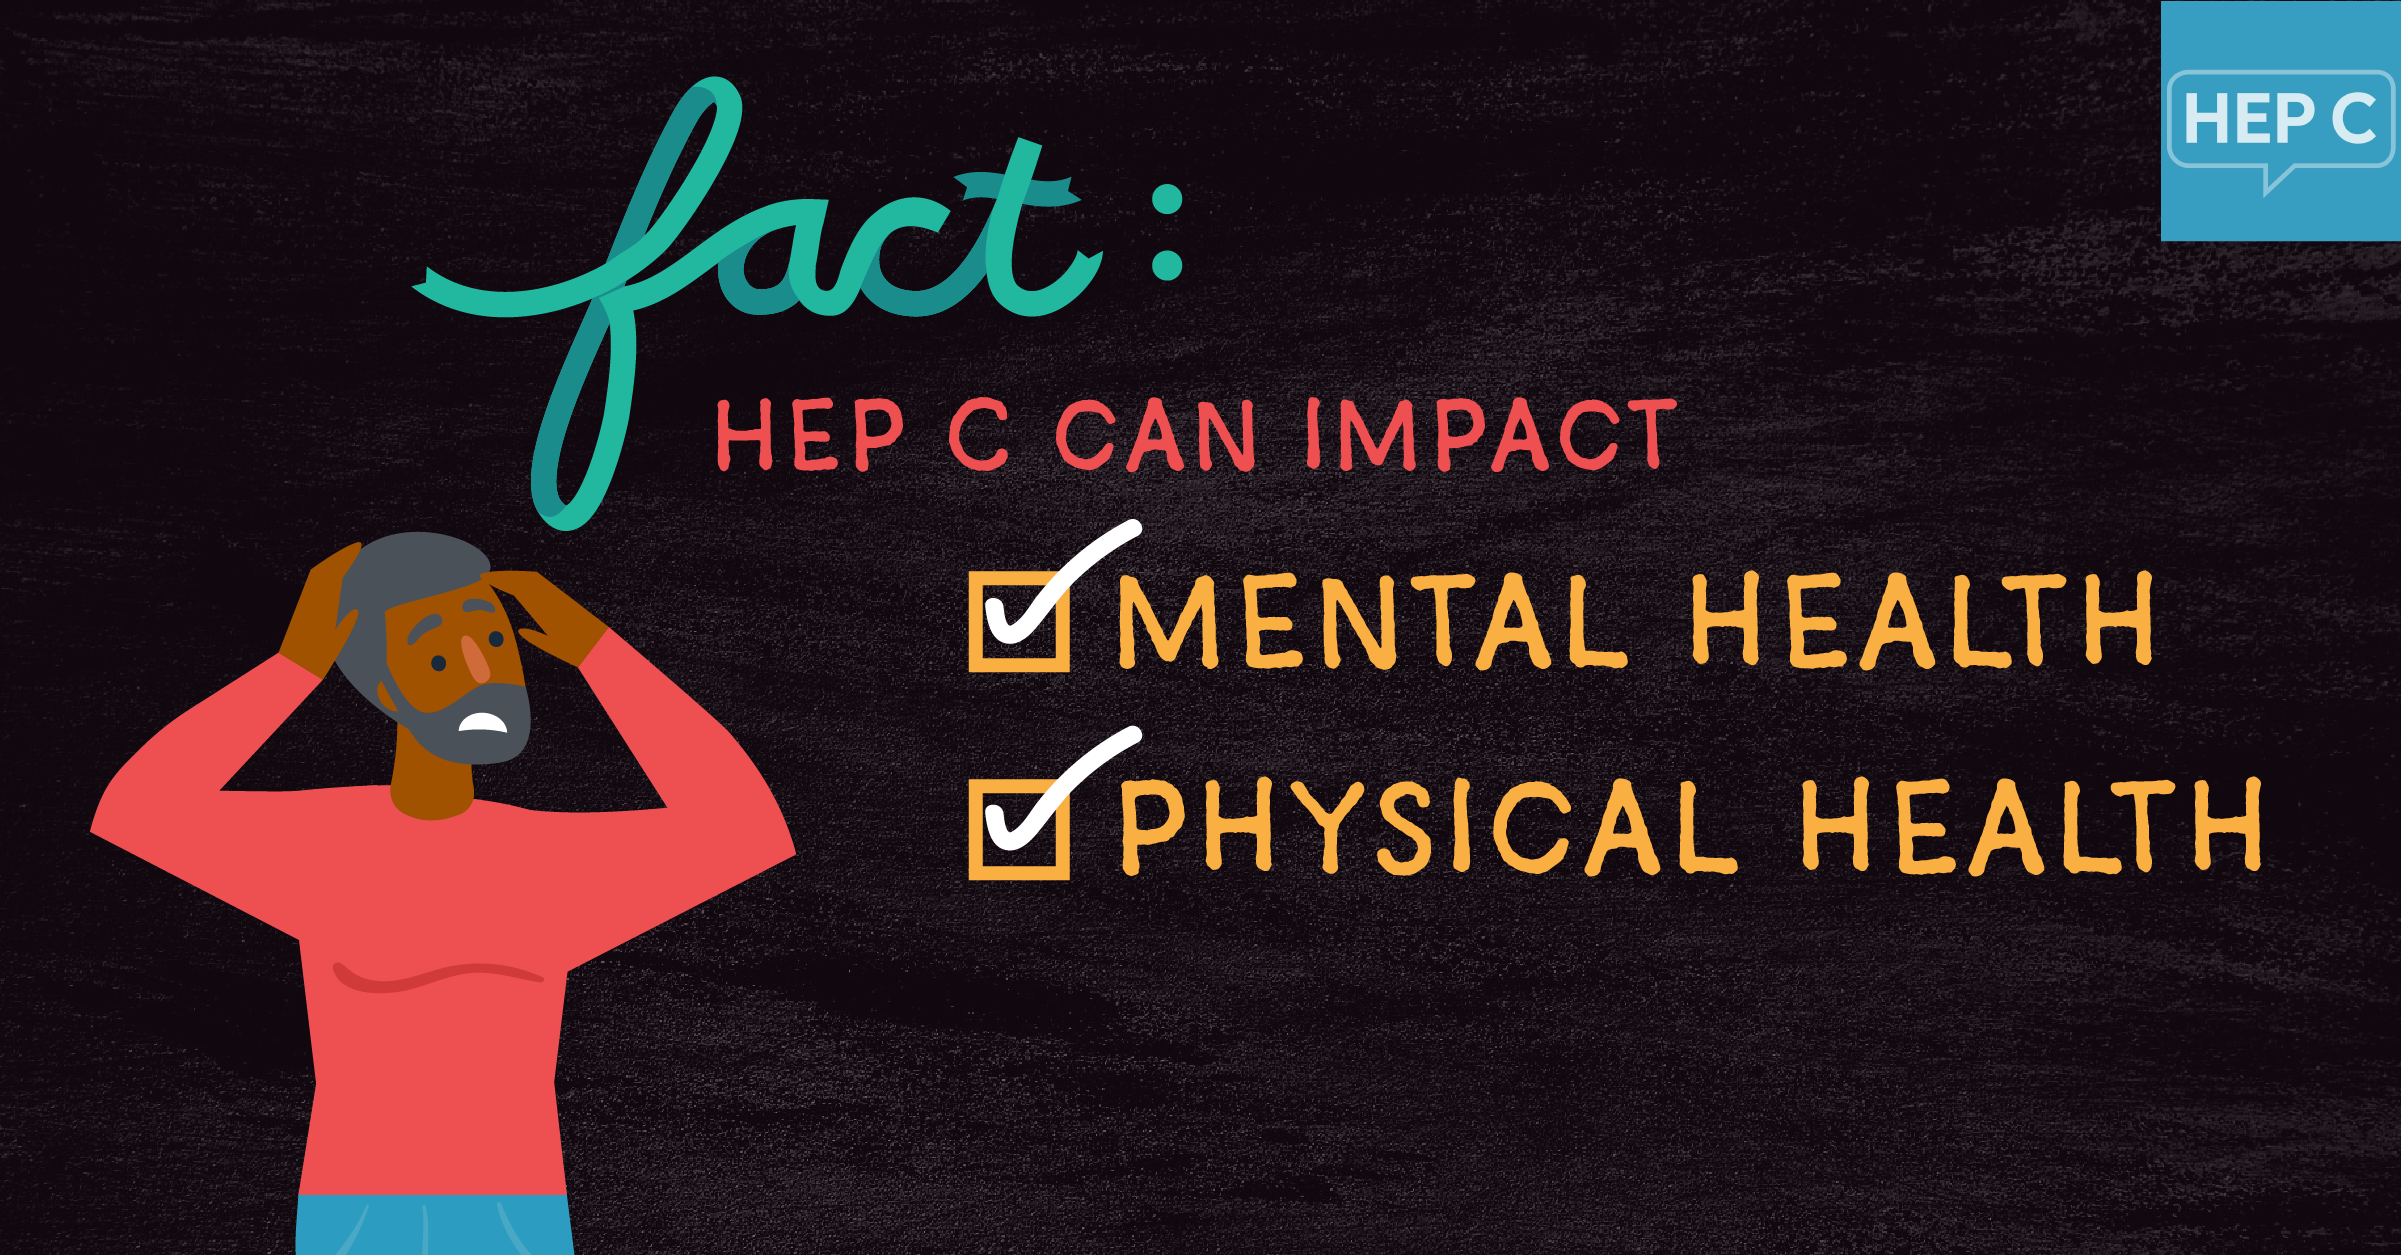 Fact: Hep C can impact mental health and physical health